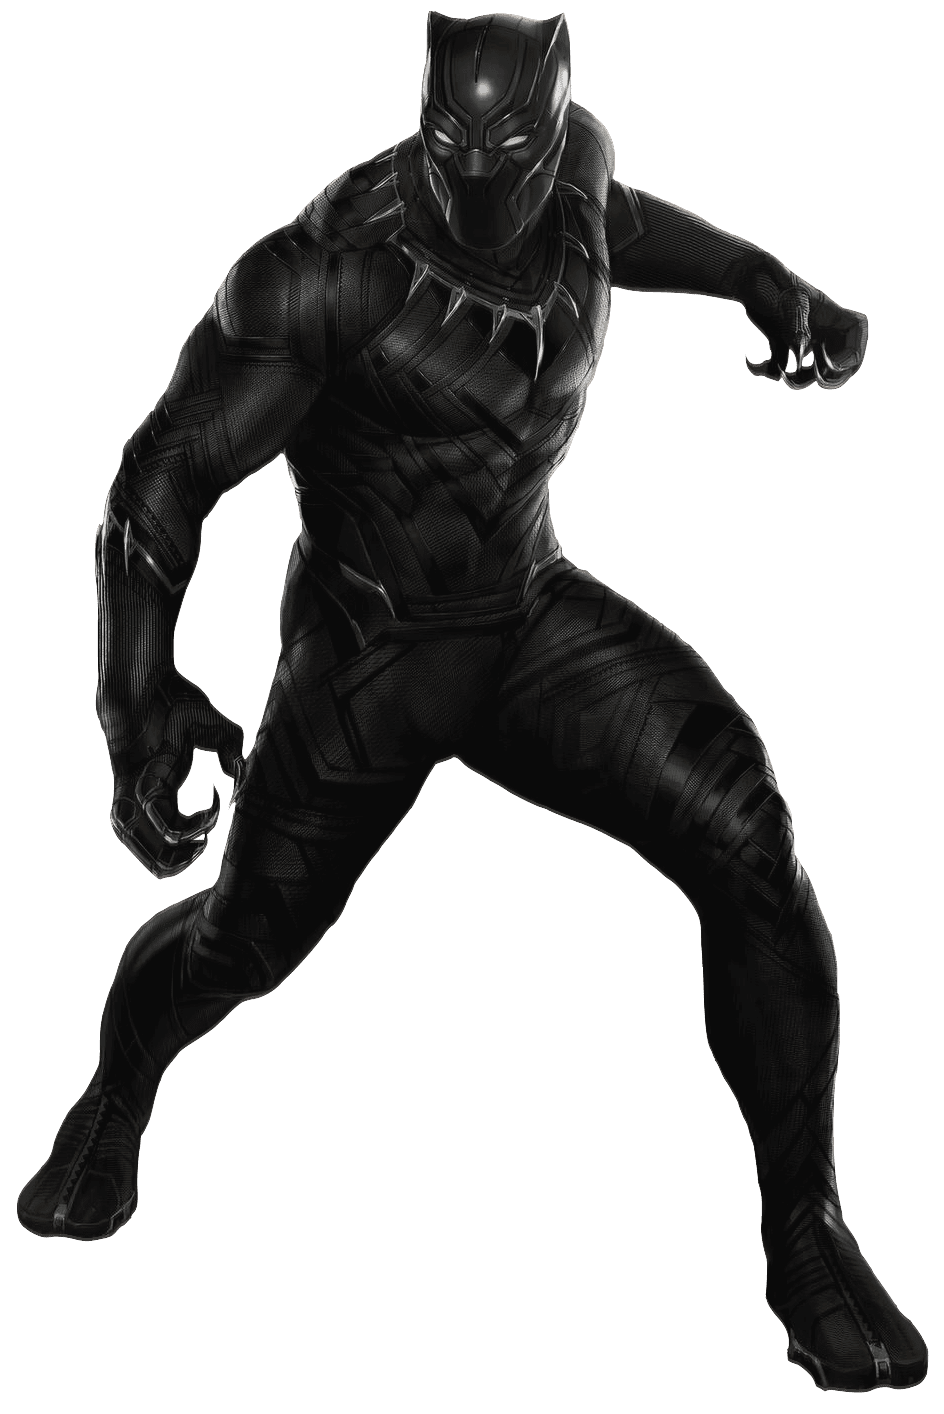 Panther Dreamcatcher Black Costume Iron Suit Clothing PNG Image